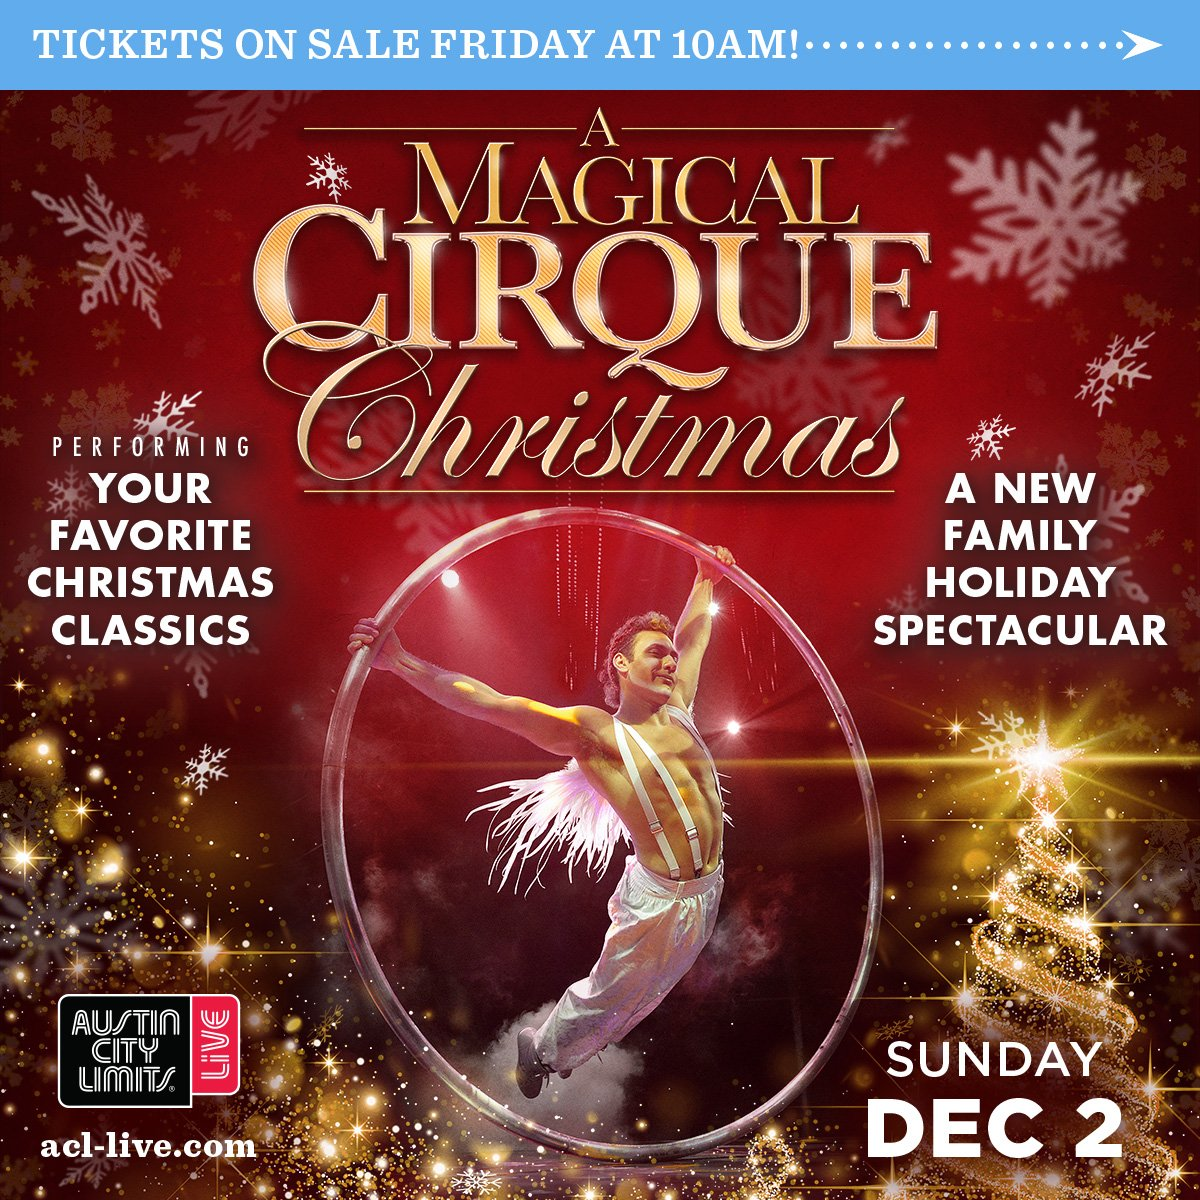 Cirque Christmas.Acl Live On Twitter Just Announced A Magical Cirque